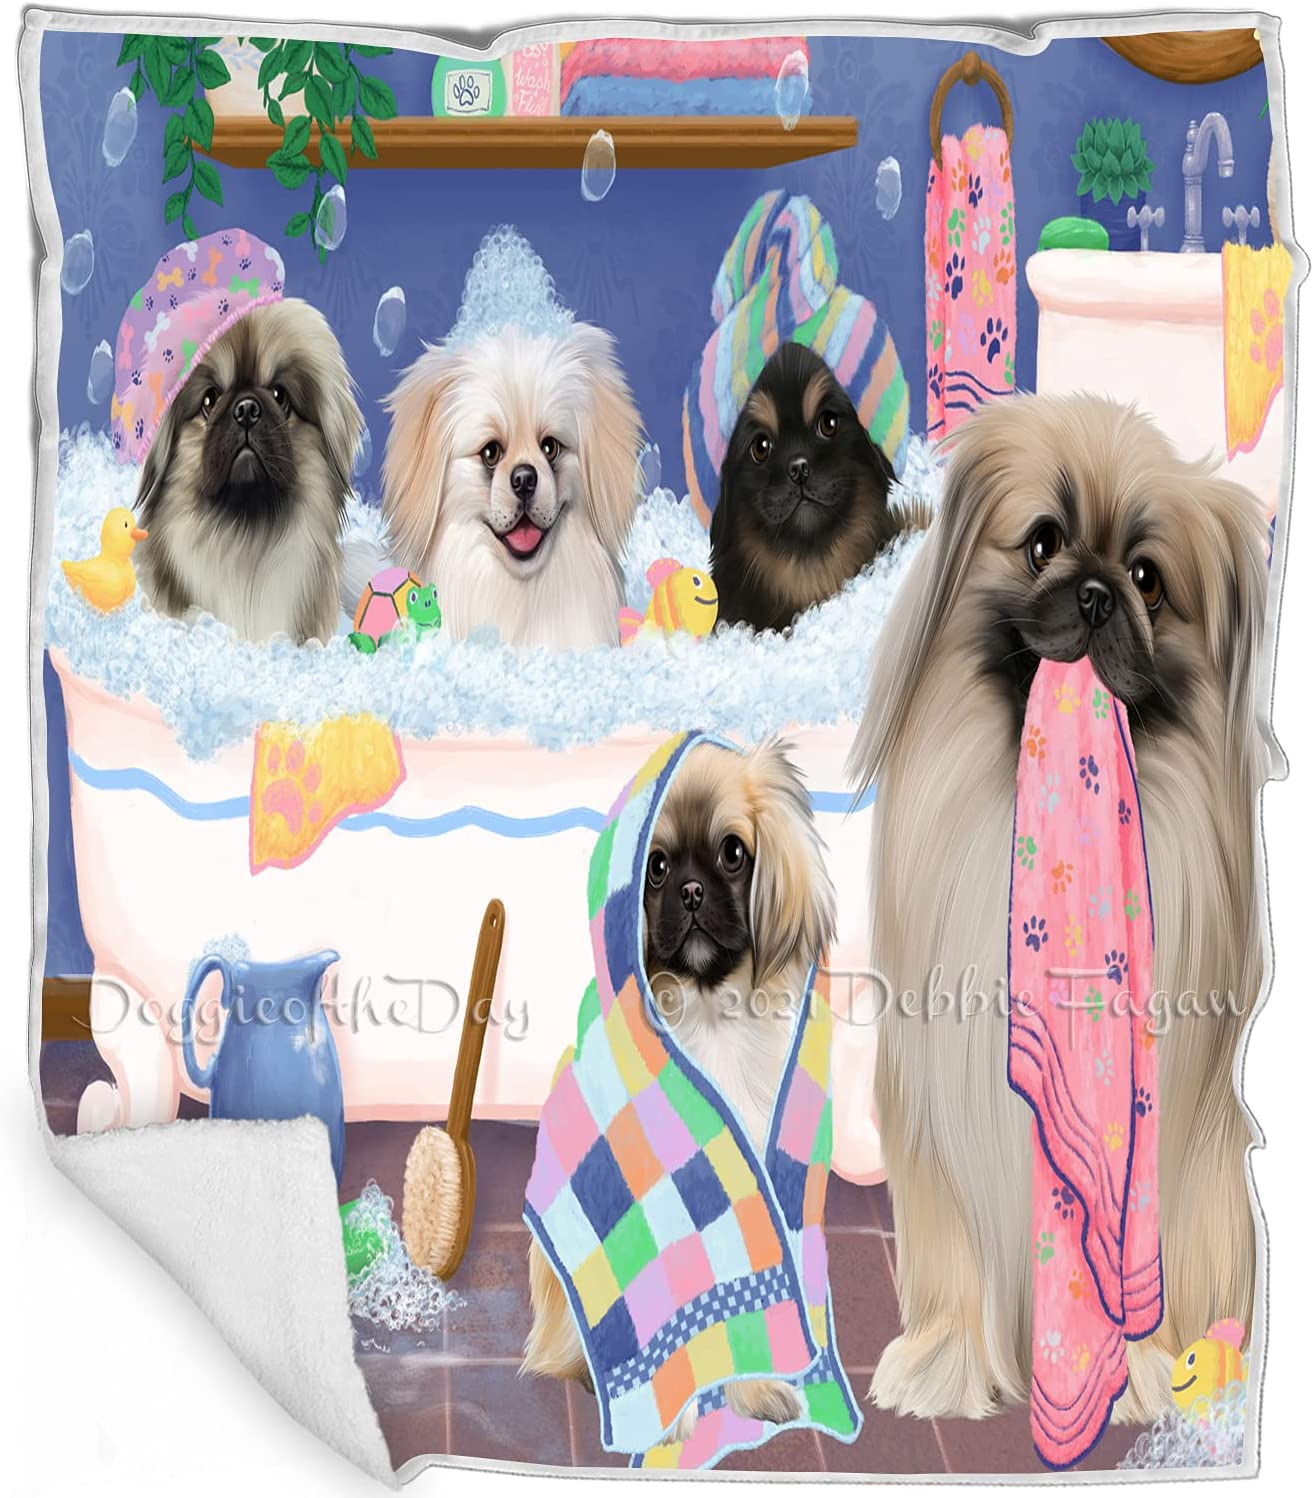 Rub A Dub Dogs in Tub 5 ☆ popular At the price of surprise Blanket Multicolor Pekingese - Fluf